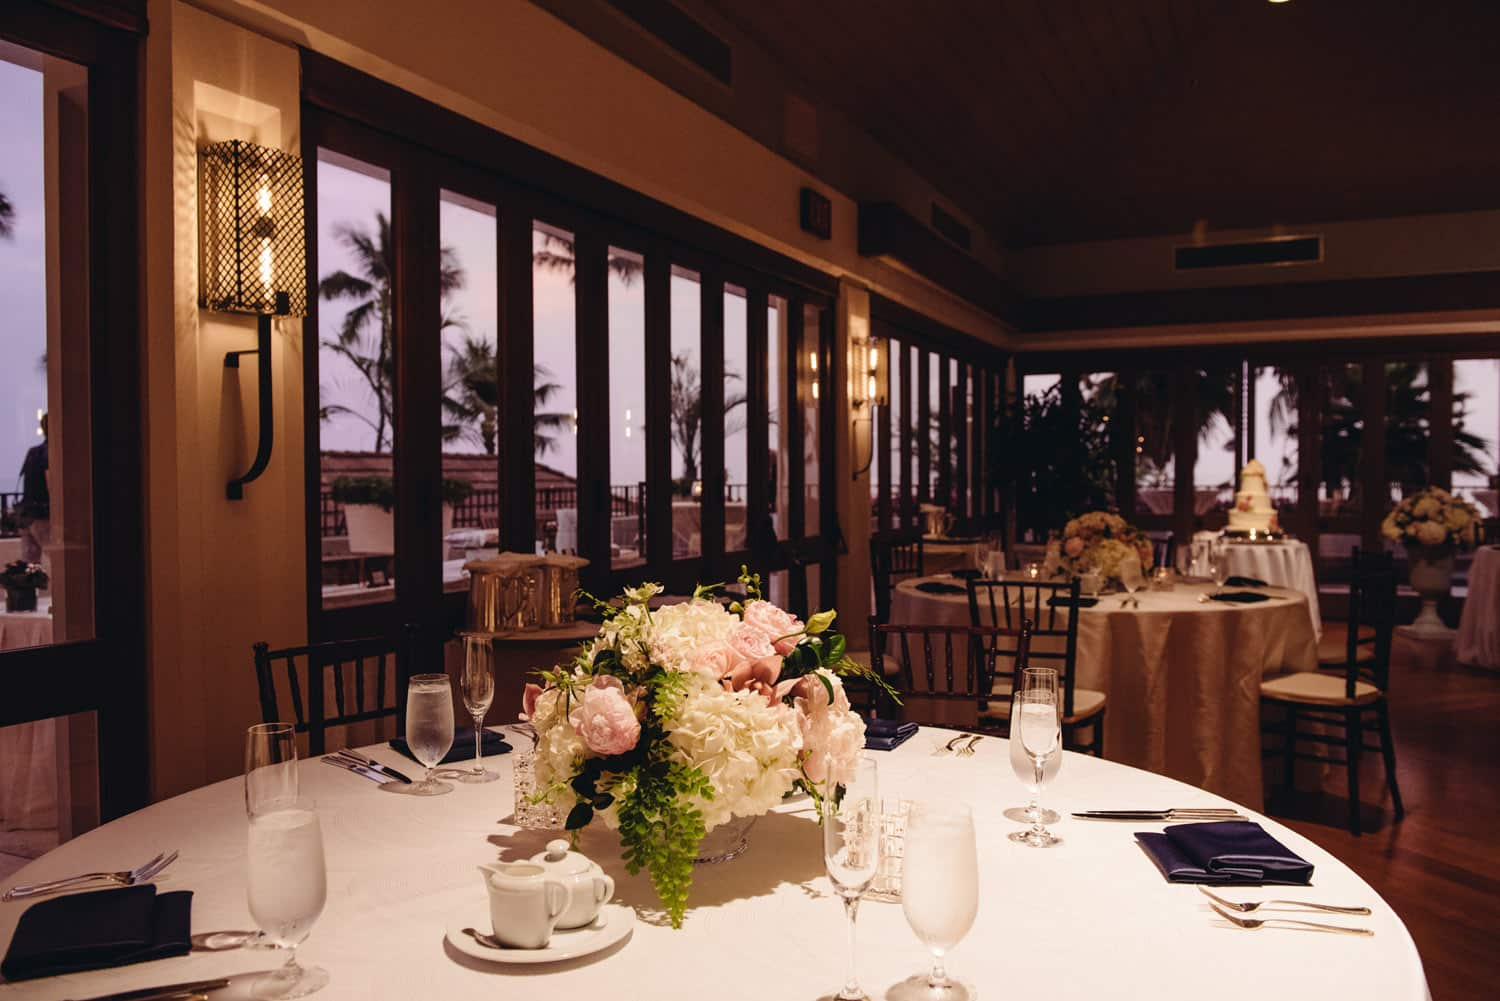 Hau Terrace Interior with Wedding Decor